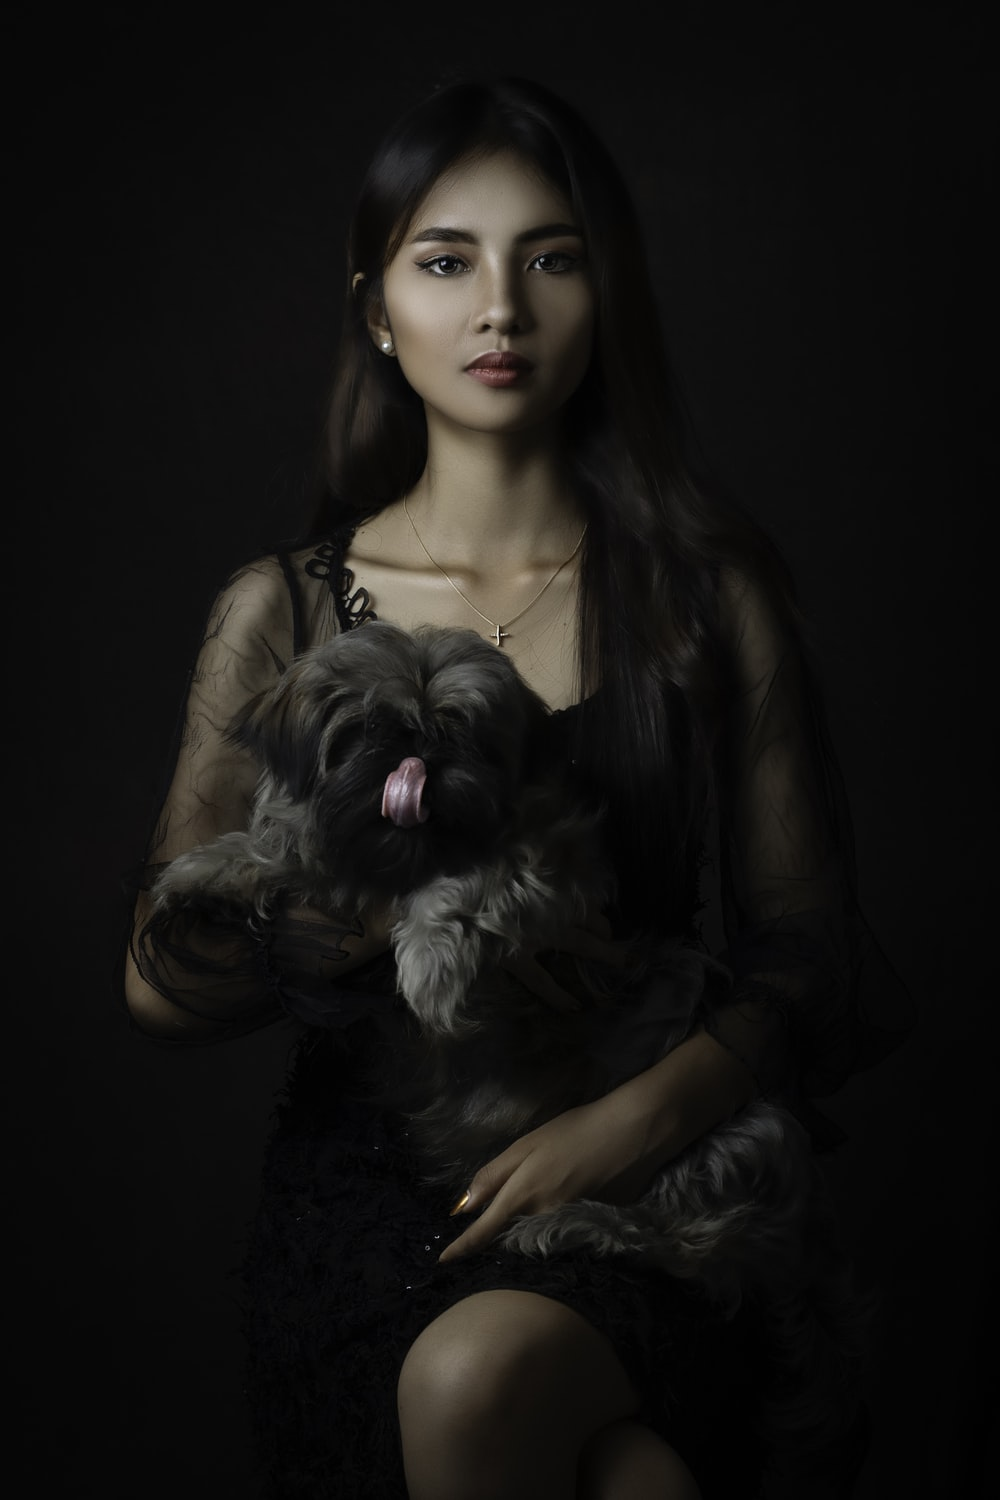 woman in brown sleeveless top holding black and white long coated small dog